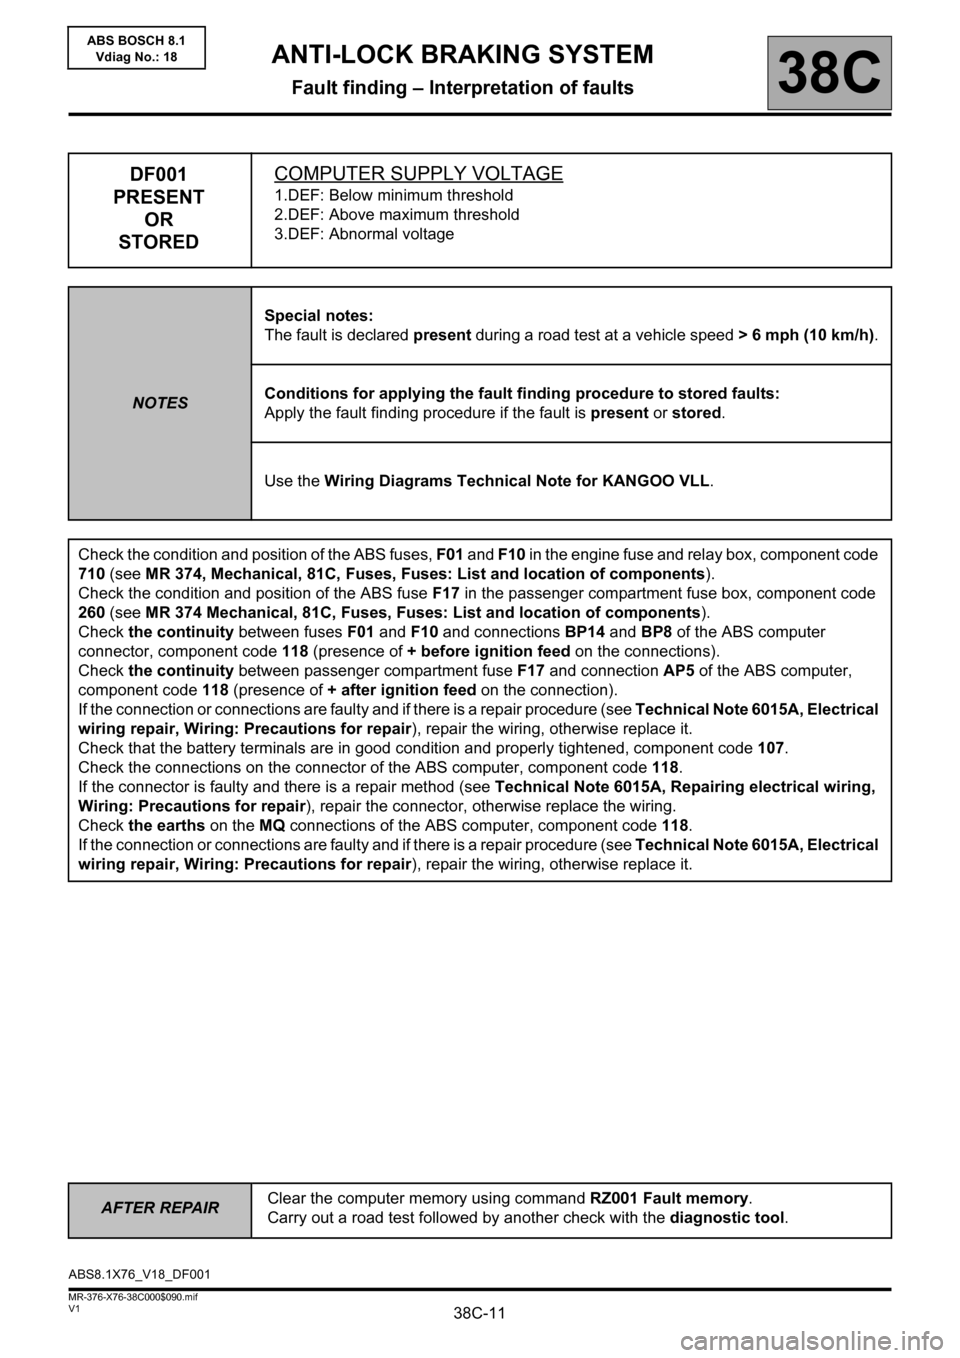 RENAULT KANGOO 2013 X61 / 2.G ABS Bosch 8.1 Workshop Manual, Page 11